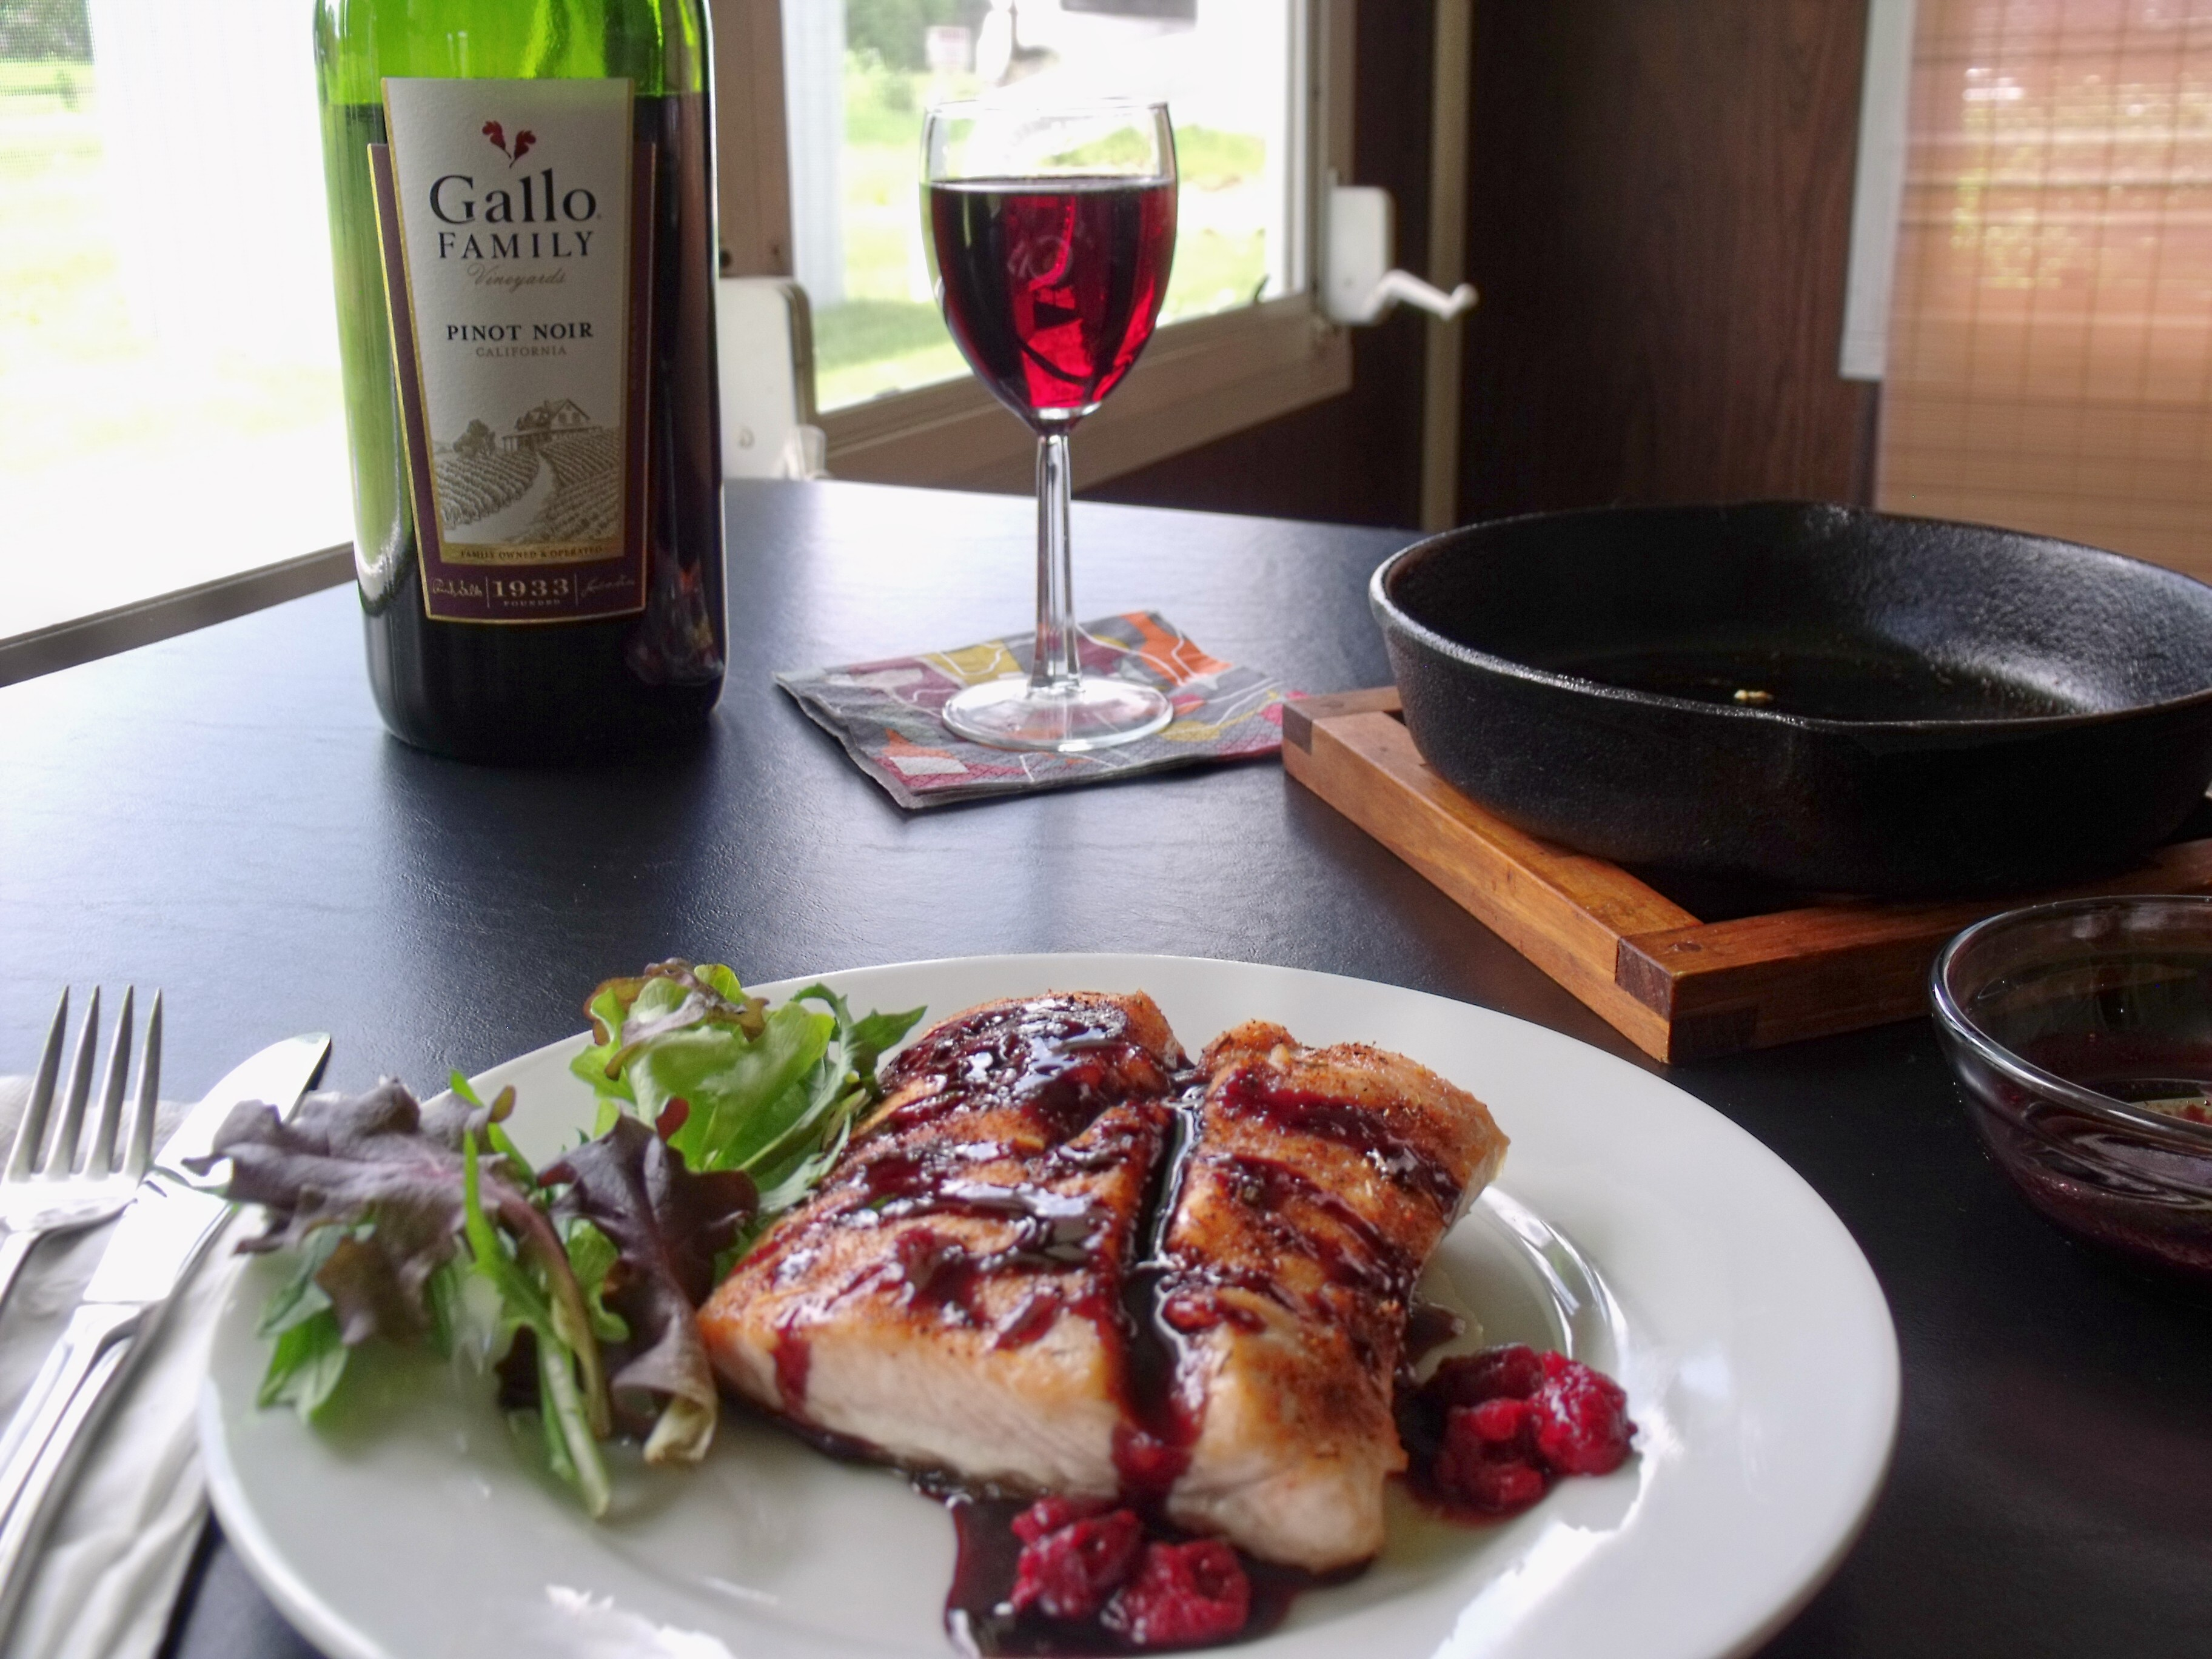 Pinot noir glazed salmon sundaysupper cindy 39 s recipes for Red wine with fish